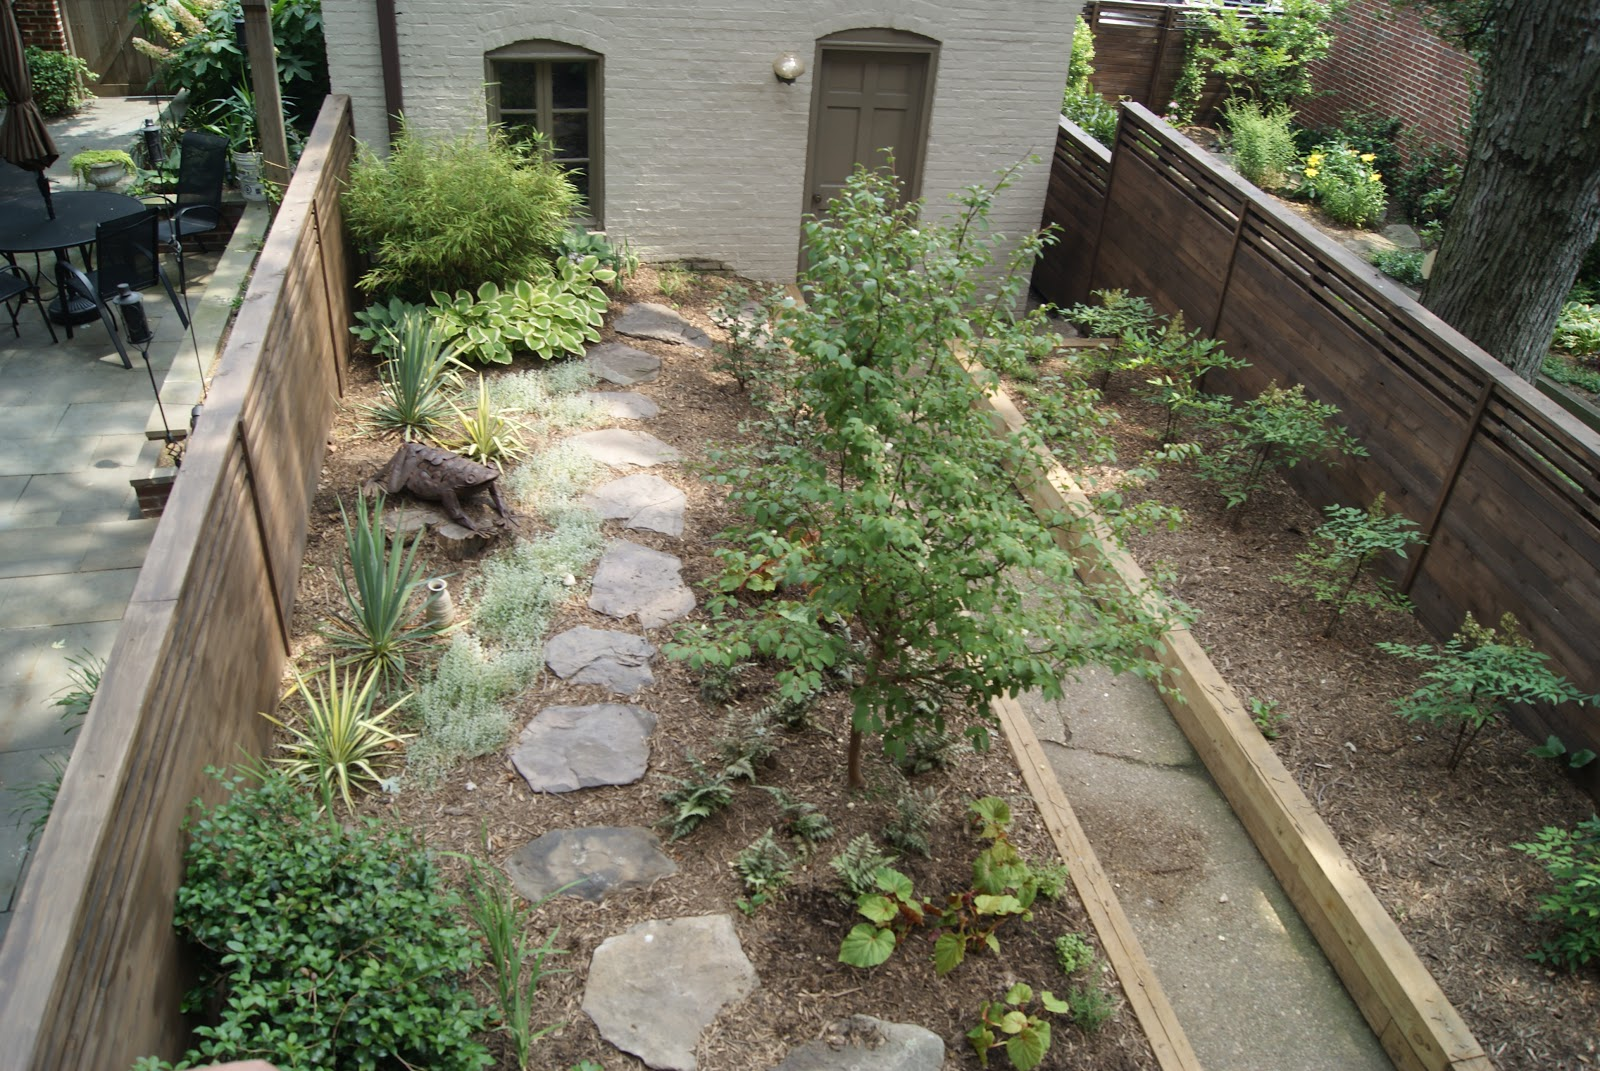 Seven Winds LLC A Woodland Garden in a City